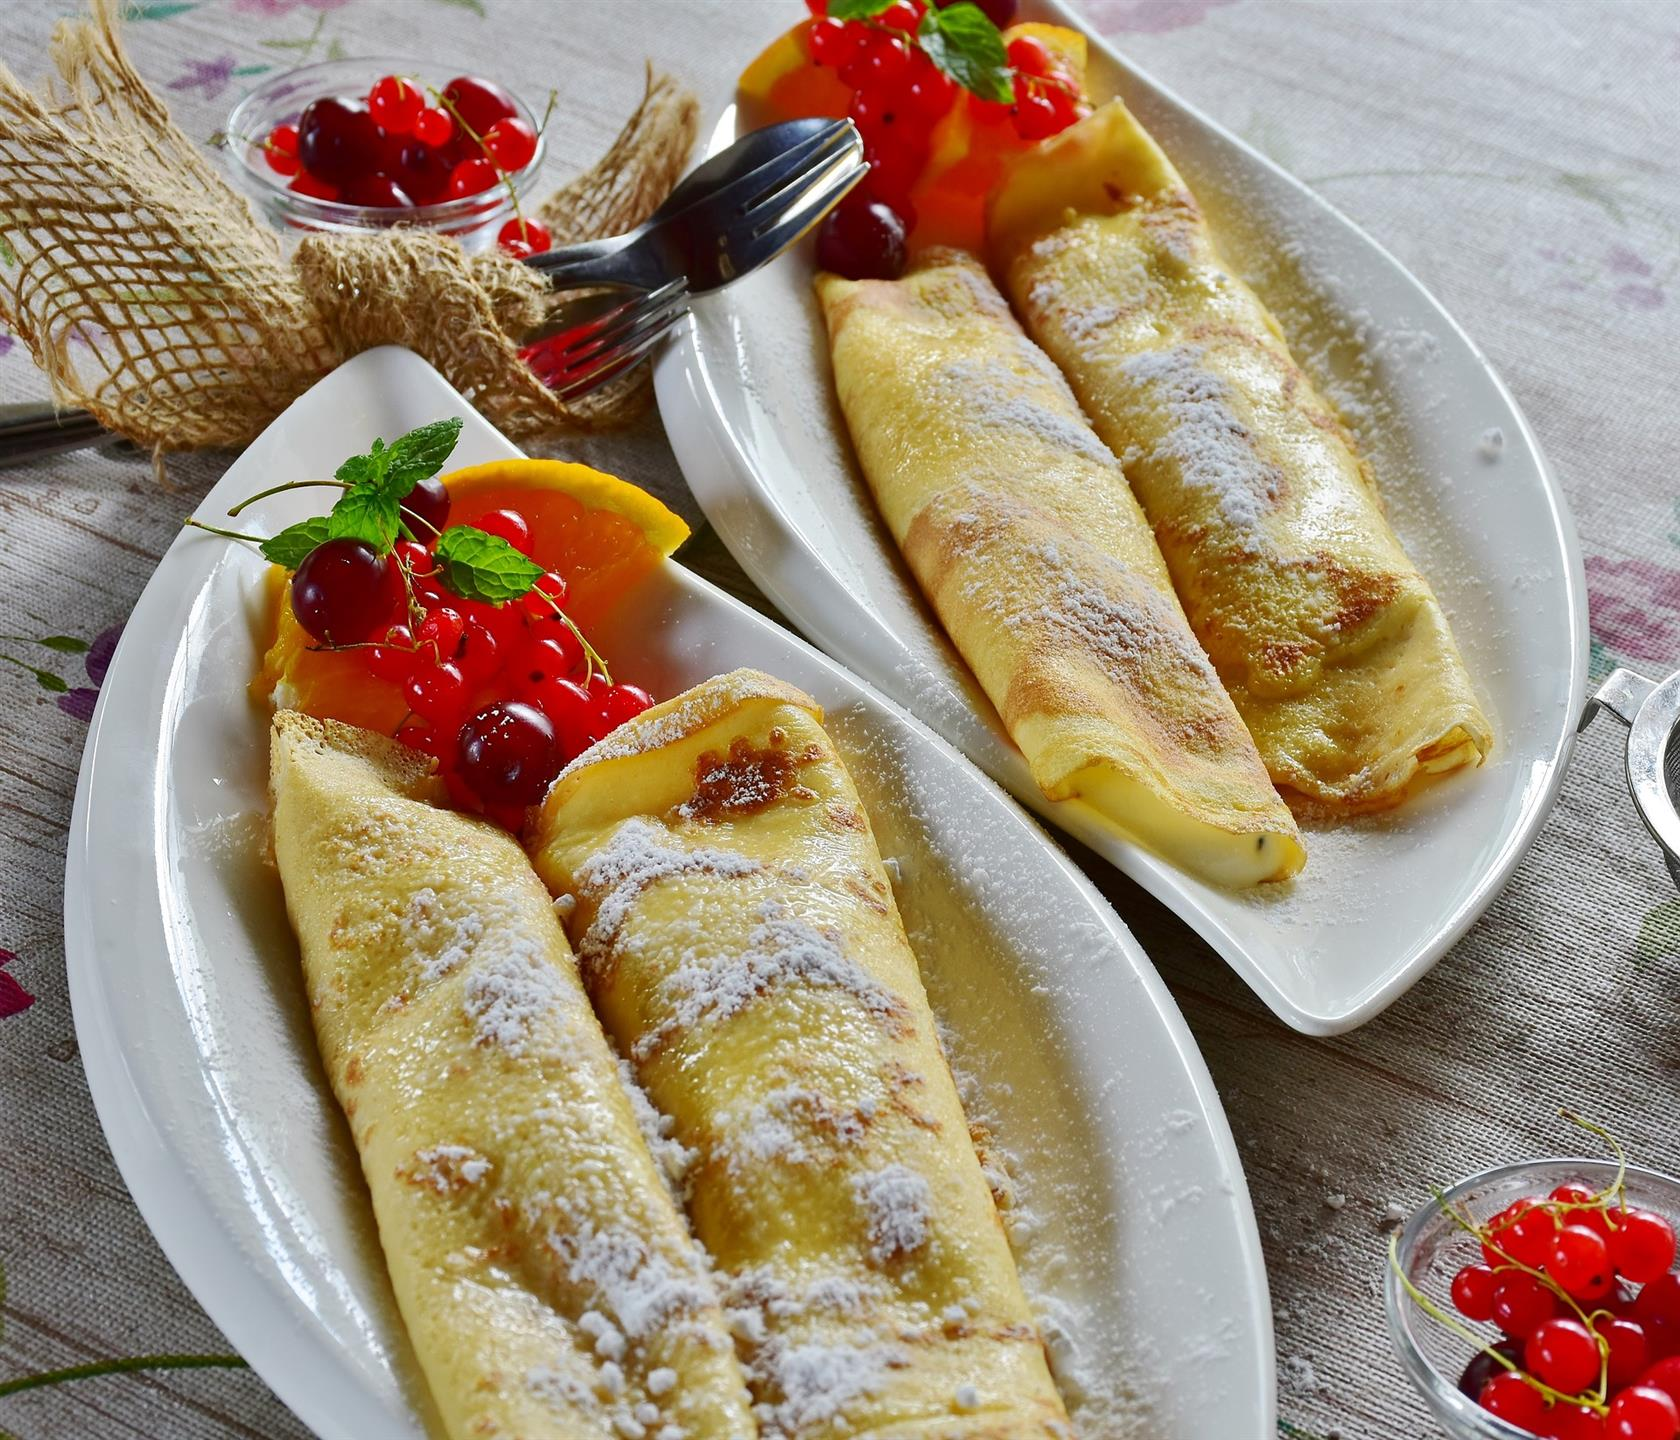 crepes topped with powdered sugar and topped with garnish